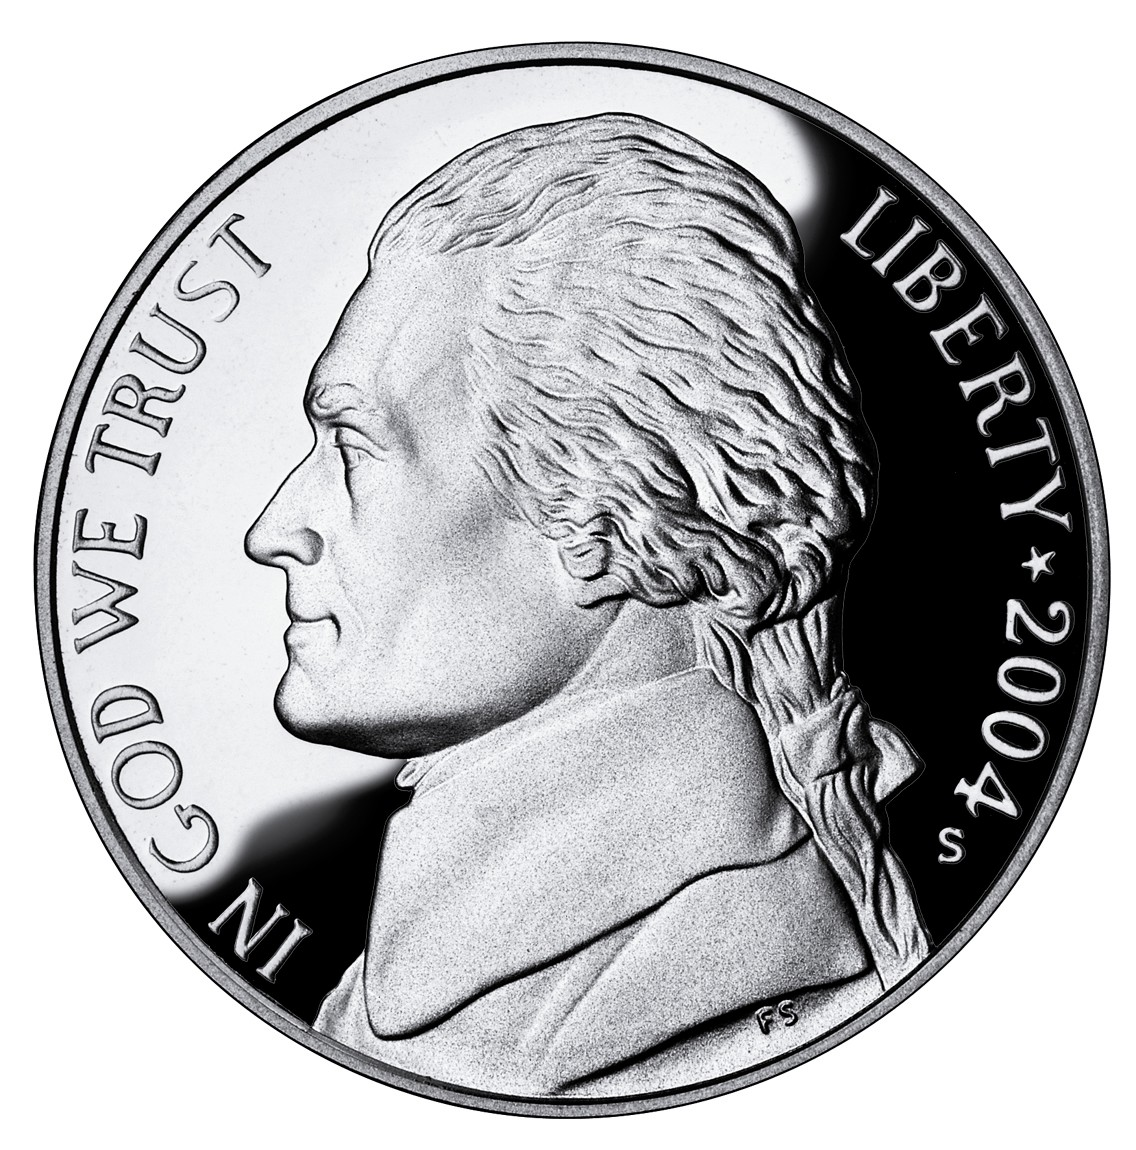 Are Pre-2011 Nickels Worth the Hedge?